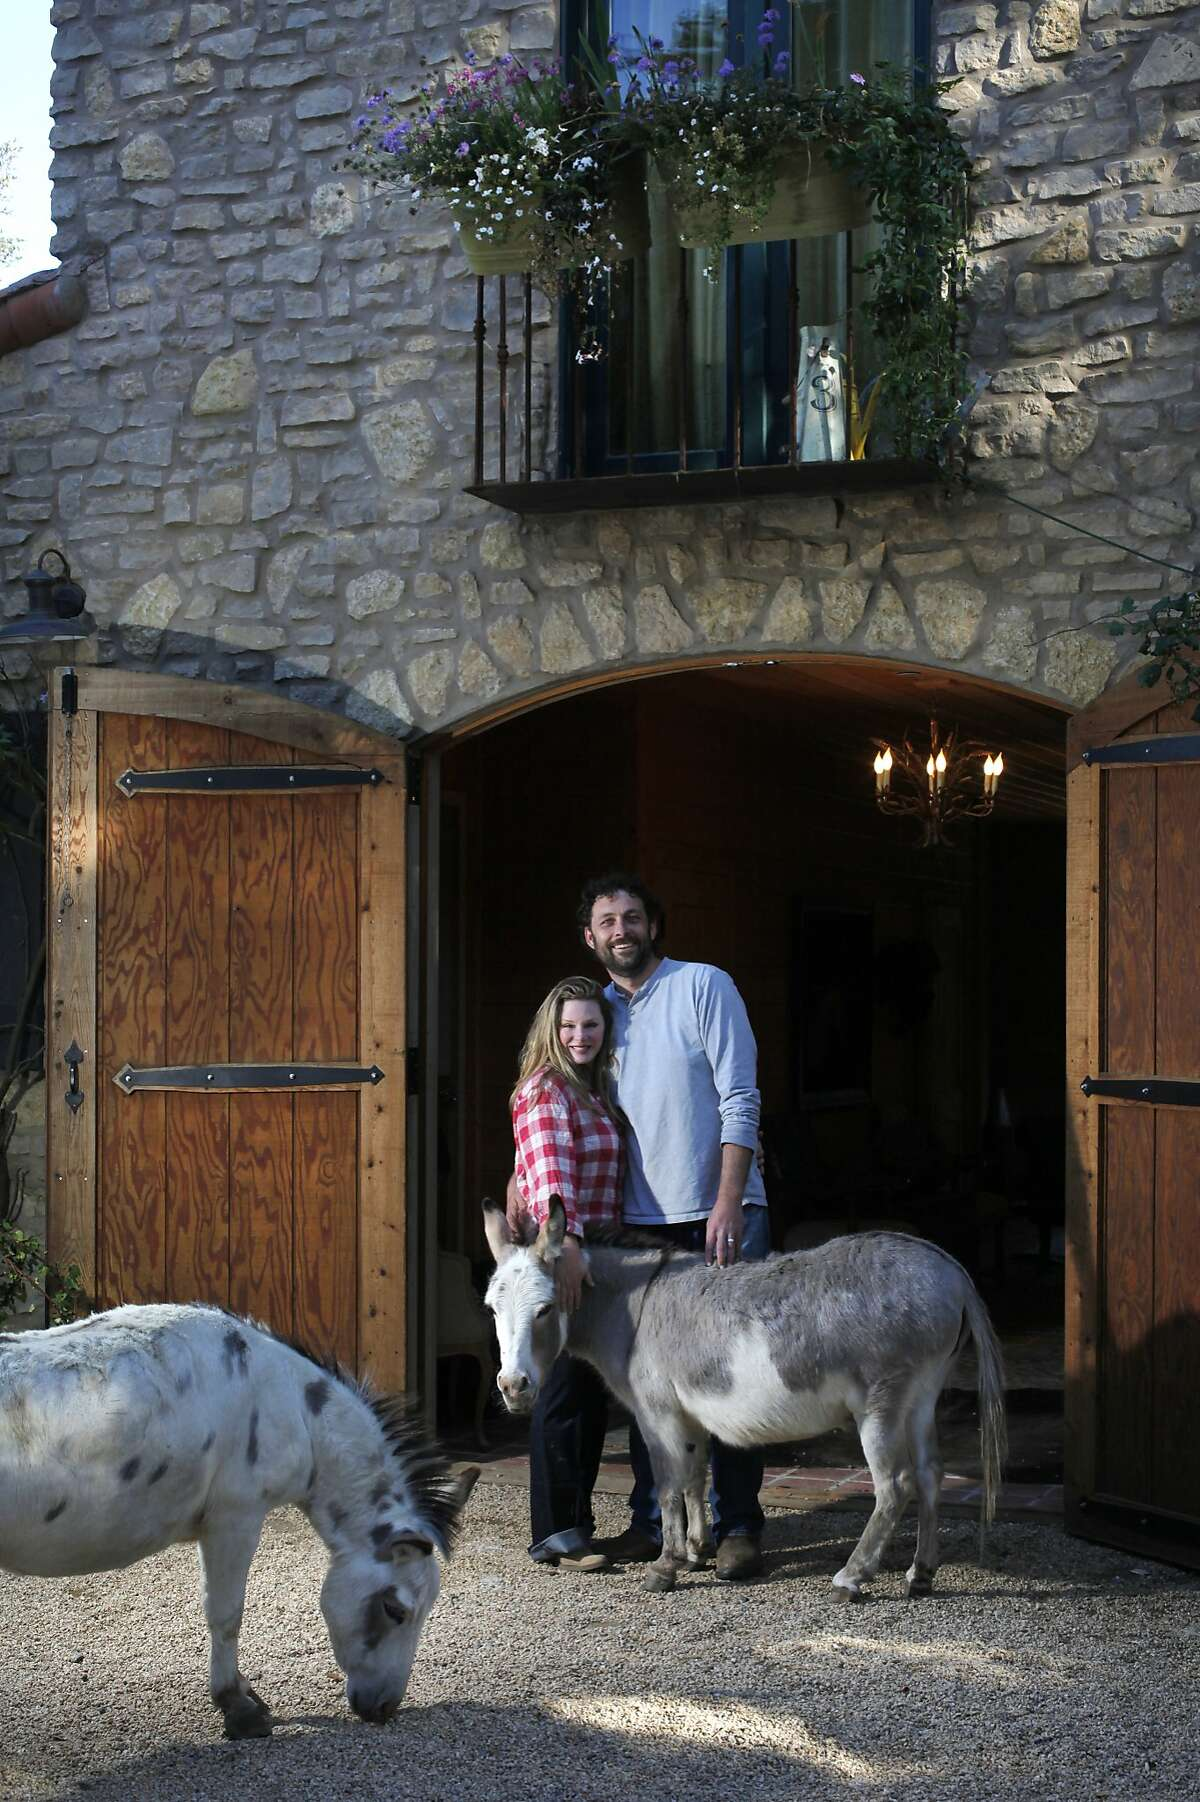 Heather Gillette, 44, and her husband Christopher Carstens, 34, pictured with miniature donkeys Large Marge, left, and Penelope May 22, 2014 in front of their home in Woodside, Calif. The couple bought the land in 2006 and built the barn with horse stables with the intent of living in the upstairs space. Over the years, though, Heather took over the downstairs area. Sometimes animals from their land wander in and out of their home, including ducks, a chicken, three dogs, cats and the occasional horse.